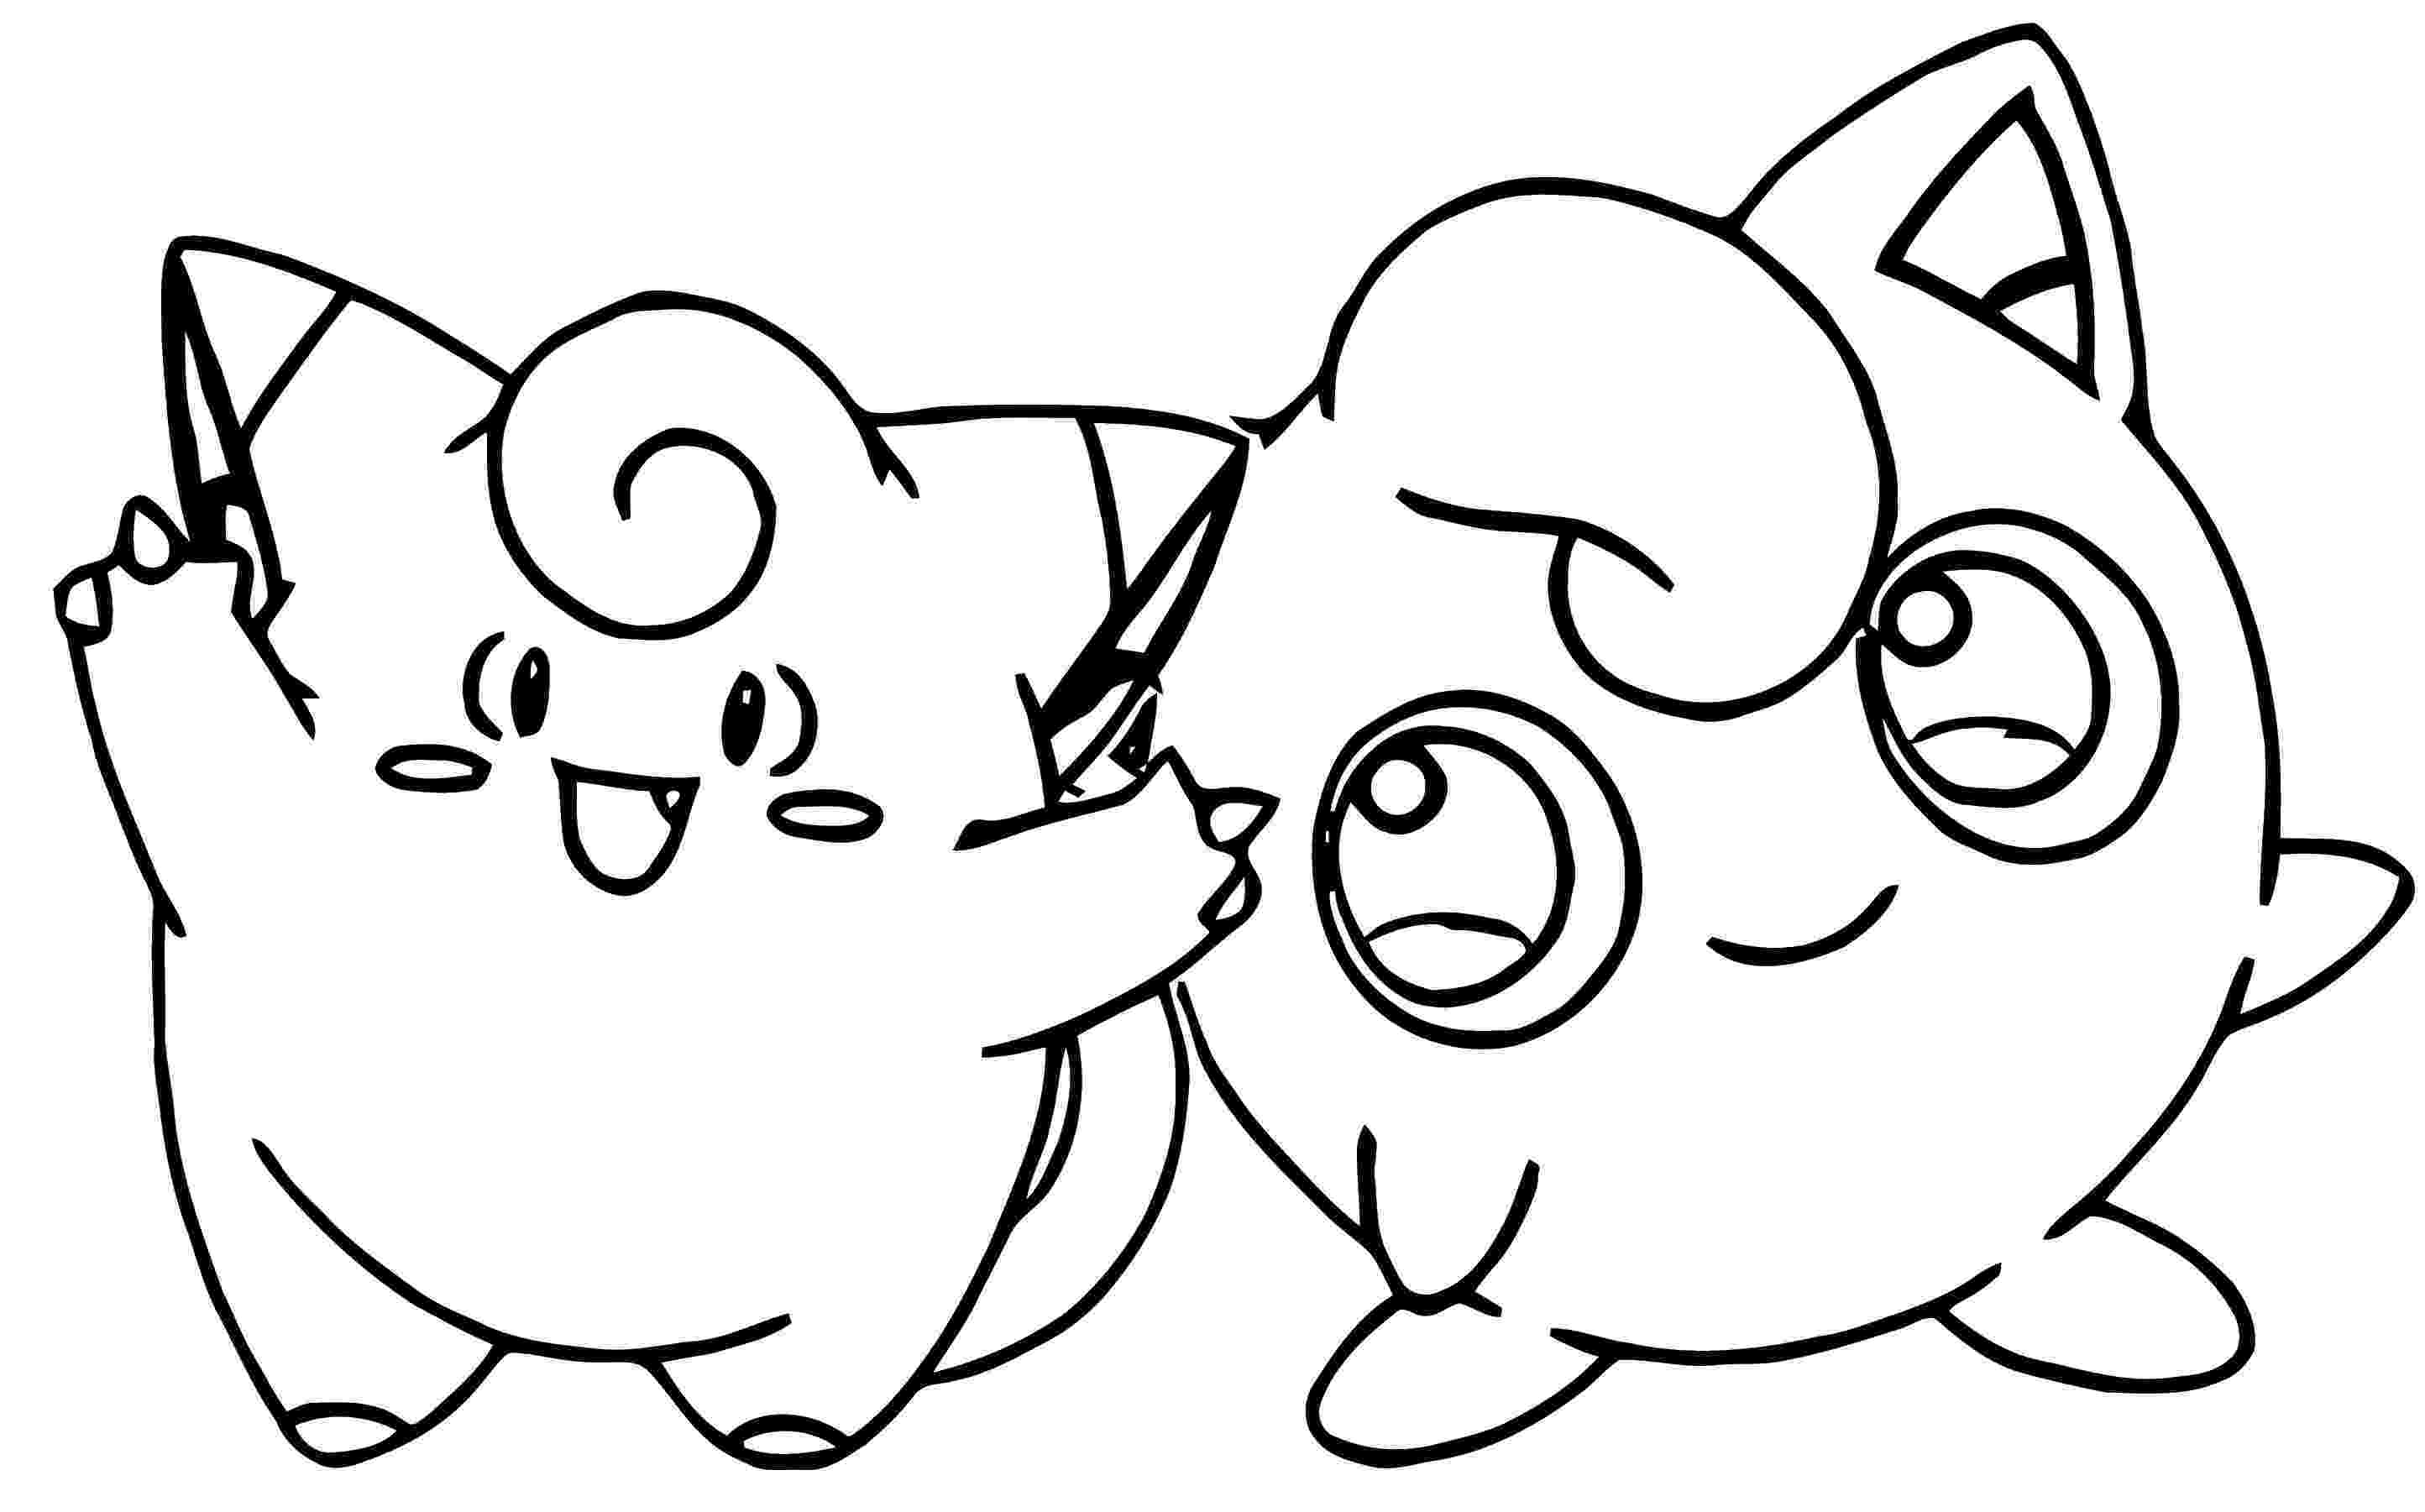 jigglypuff coloring pages girl jigglypuff coloring page wecoloringpagecom jigglypuff coloring pages